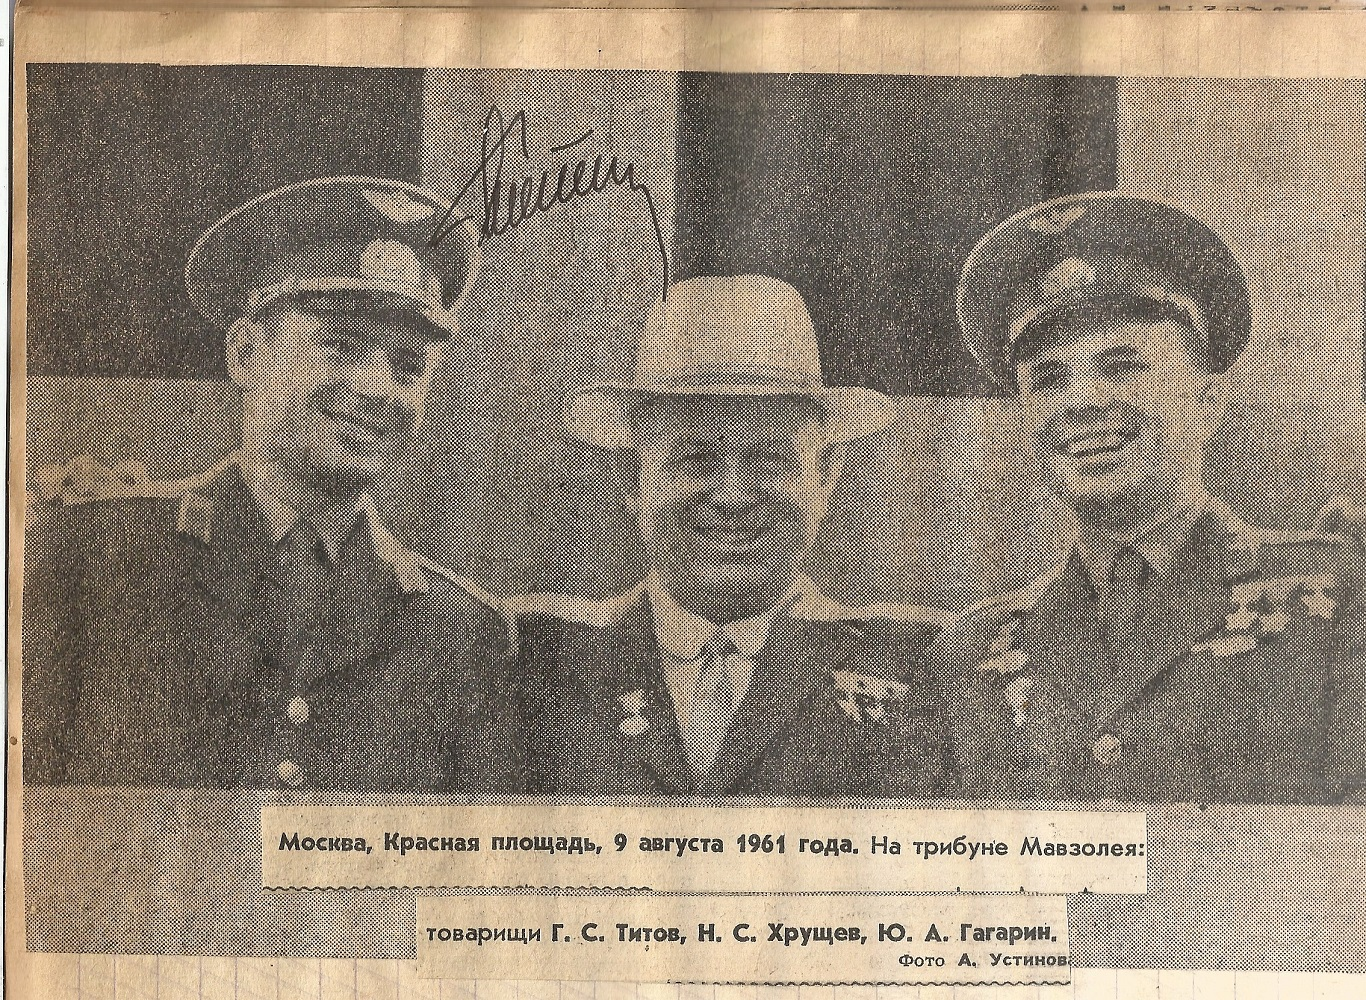 1950/60s Russian Cosmonauts multiple signed hard backed scrapbook compiled by a worker at Baikonur - Image 8 of 22